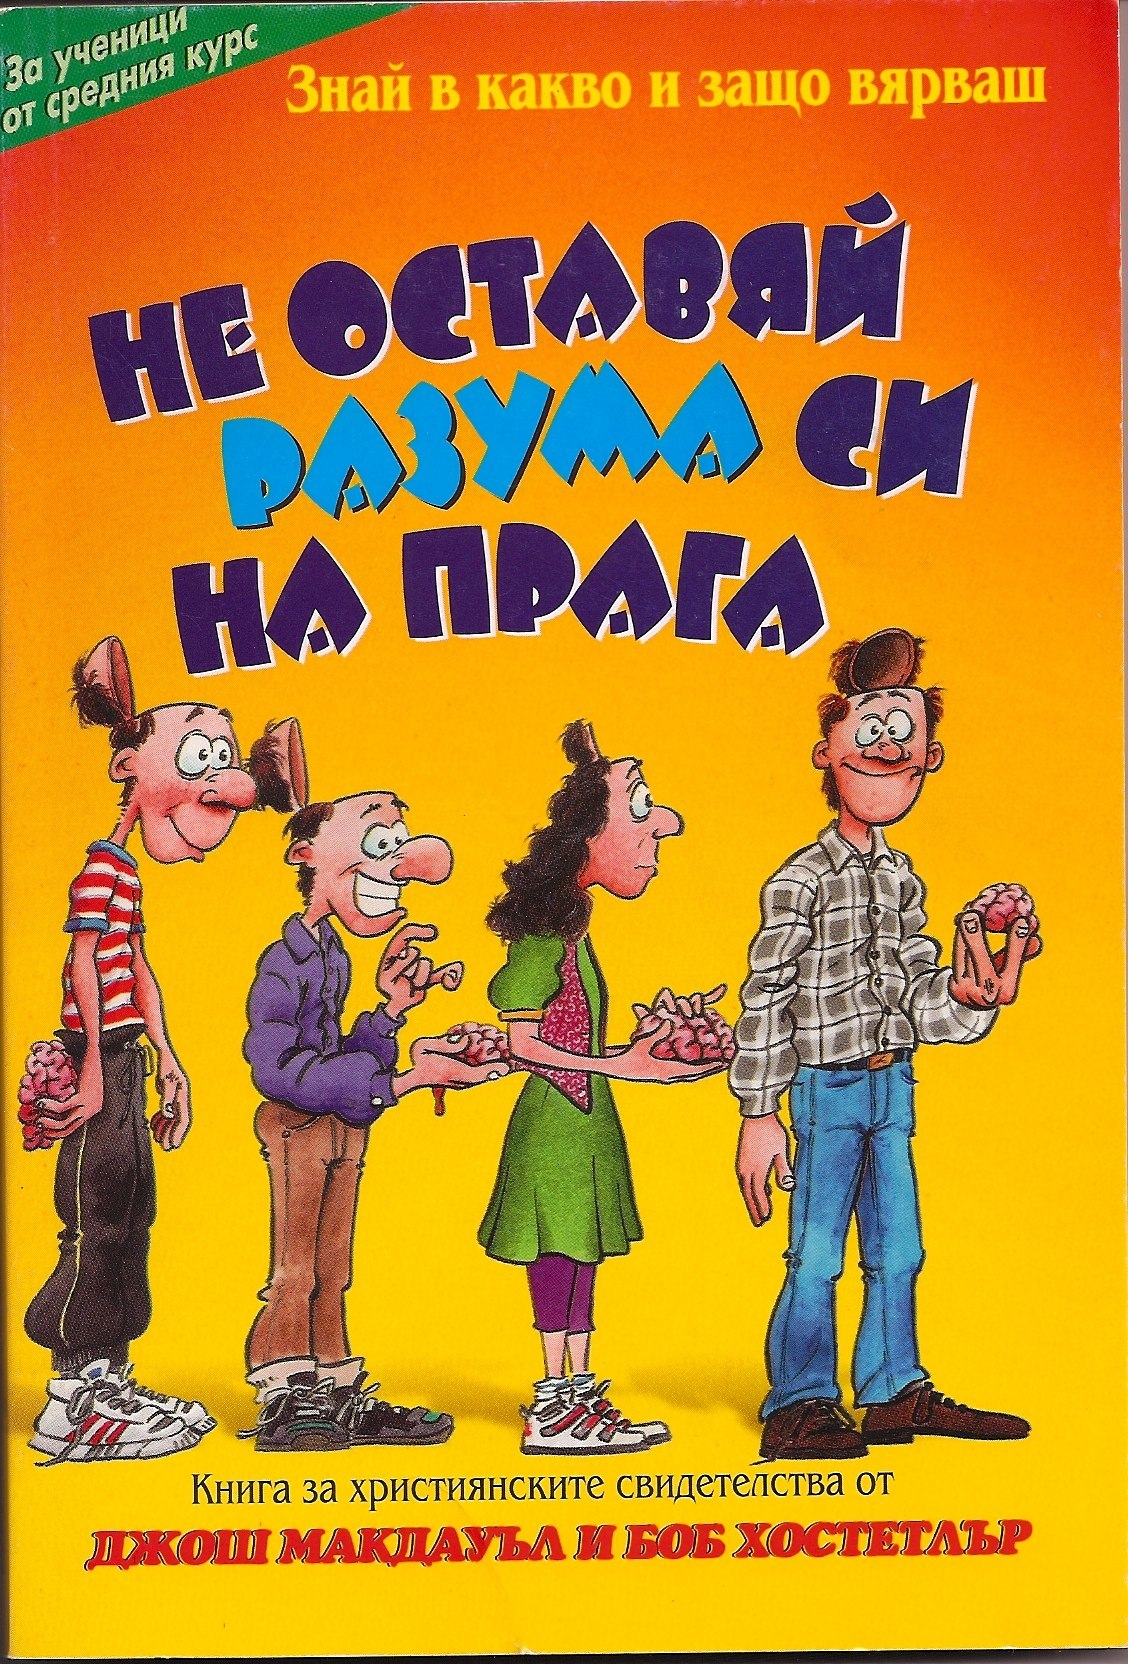 Don't Check Your Brains (Bulgarian)